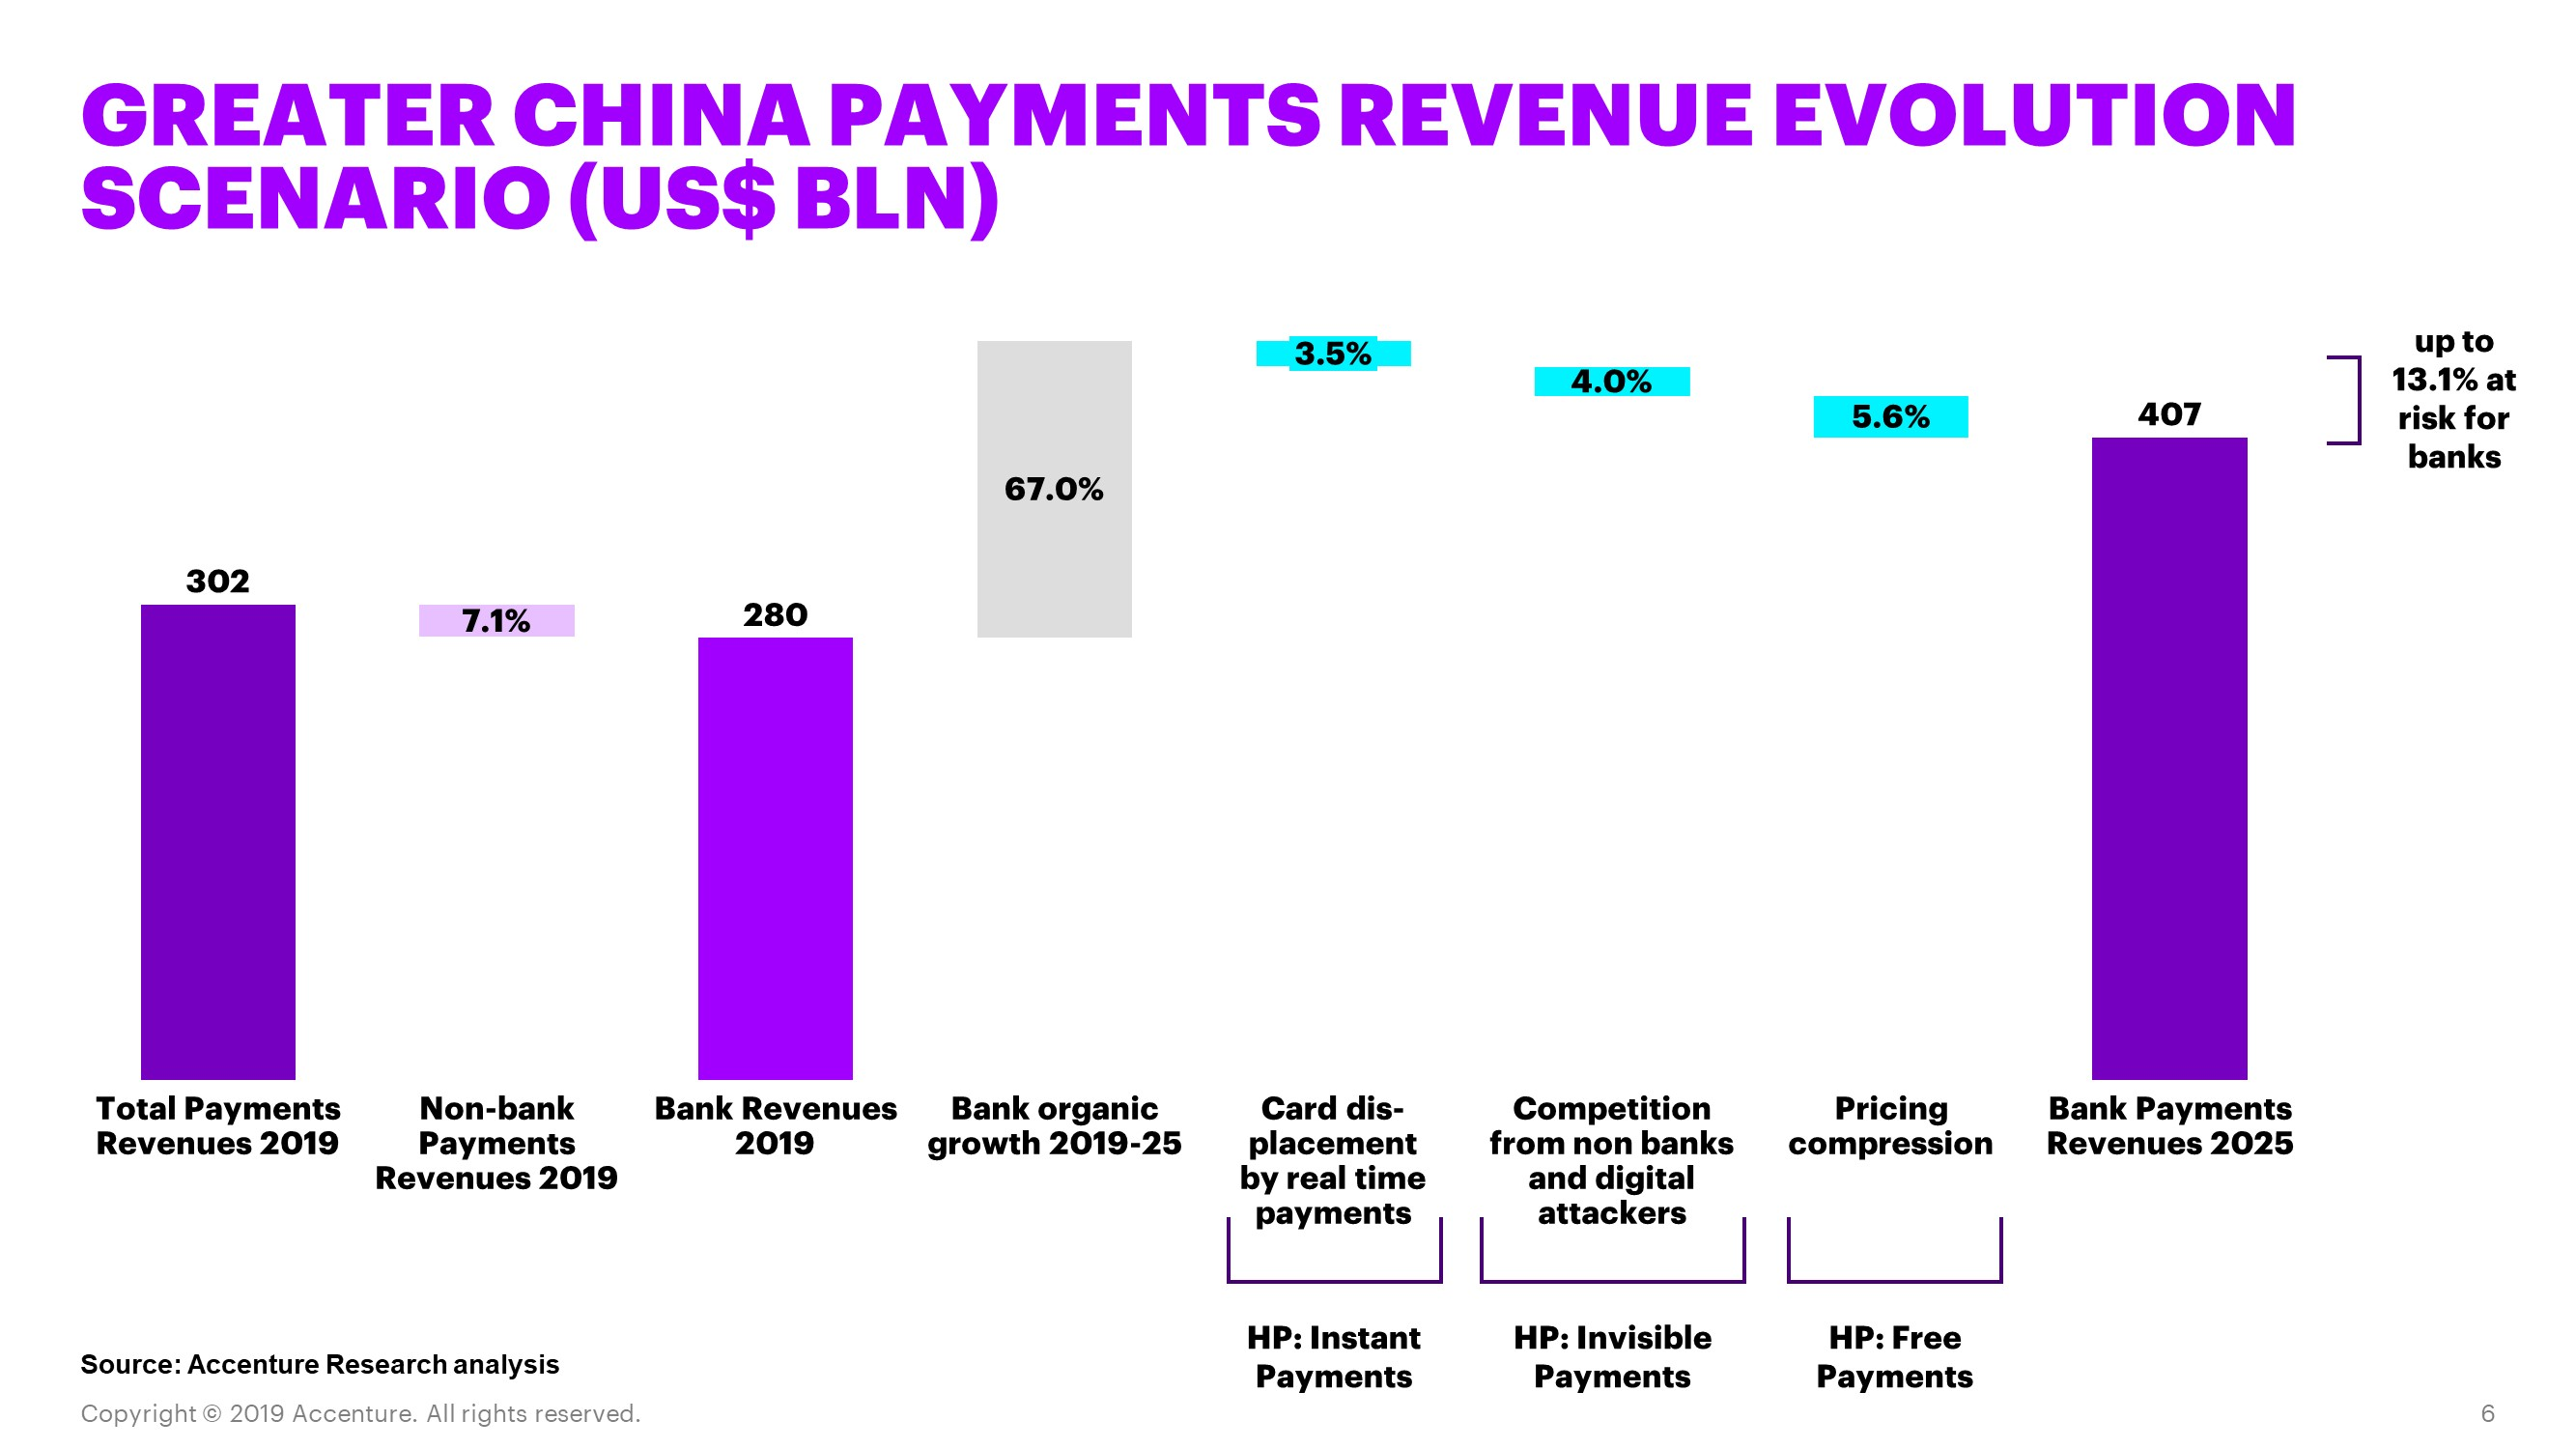 Payments Revenues at risk_GCchart